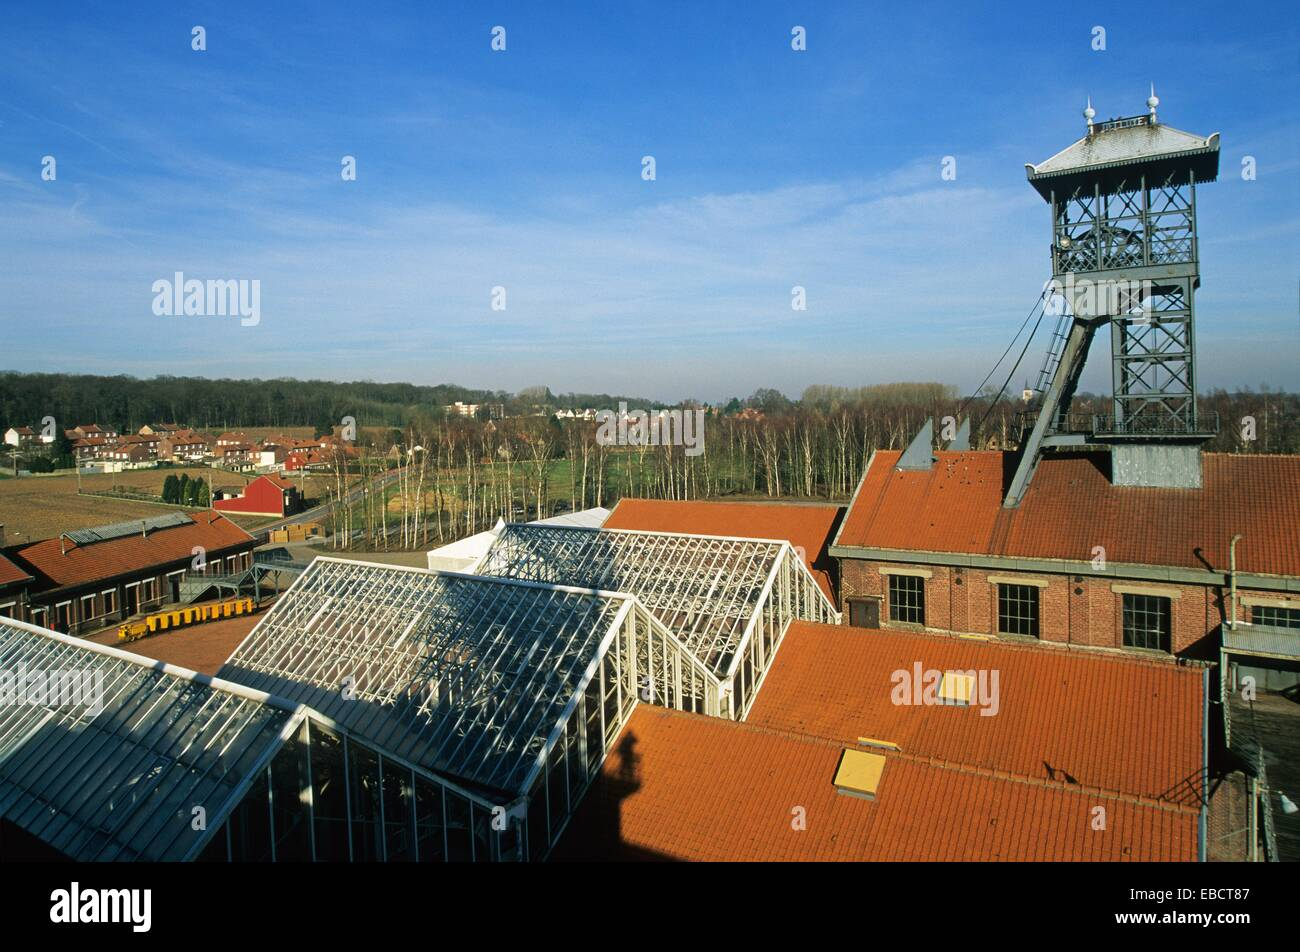 Livin Calais Calais Mining Stock Photos Calais Mining Stock Images Alamy